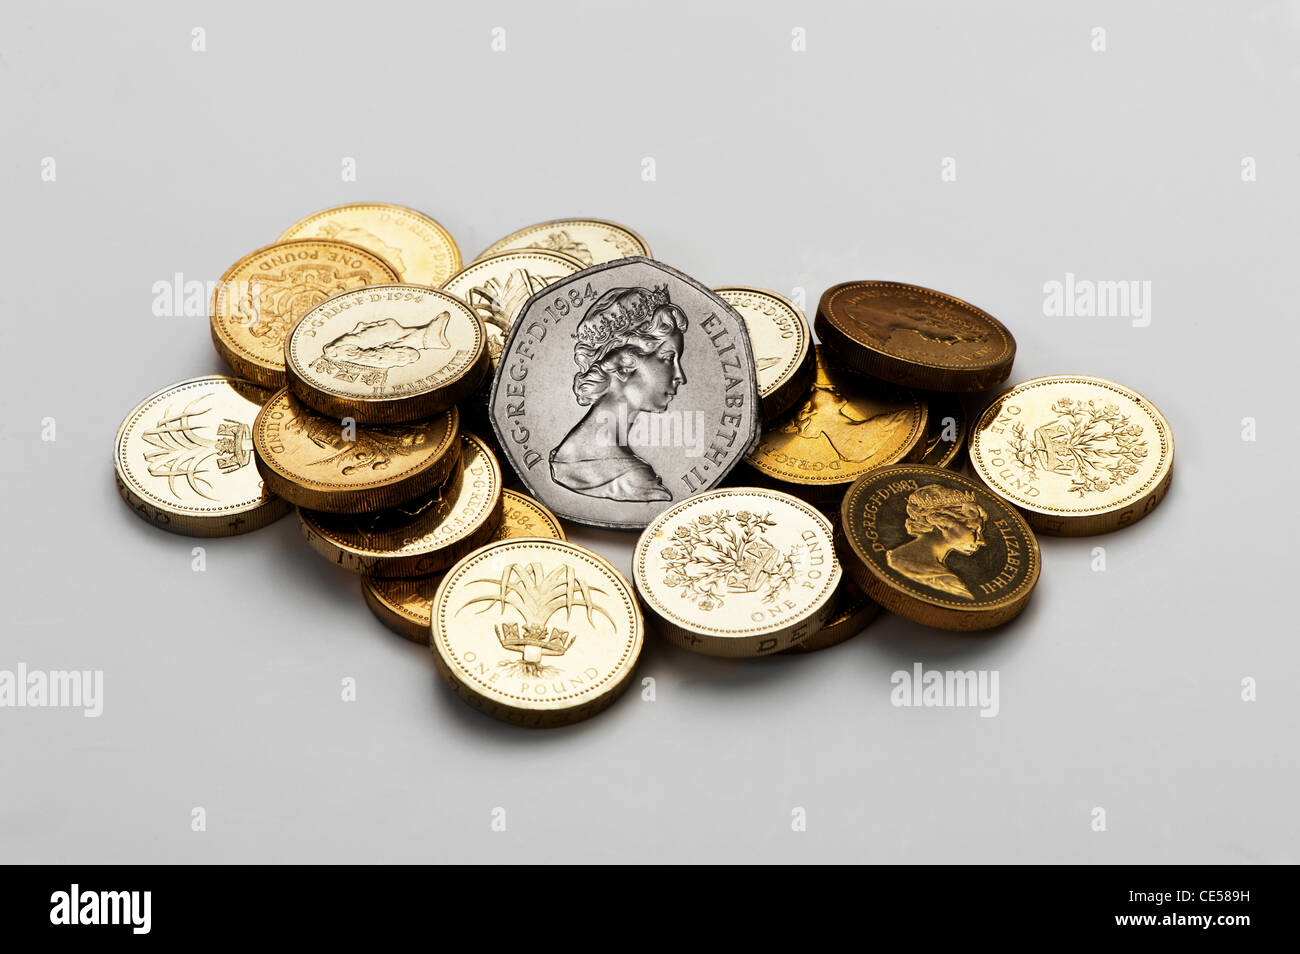 Realm Coins Stock Photos & Realm Coins Stock Images - Alamy